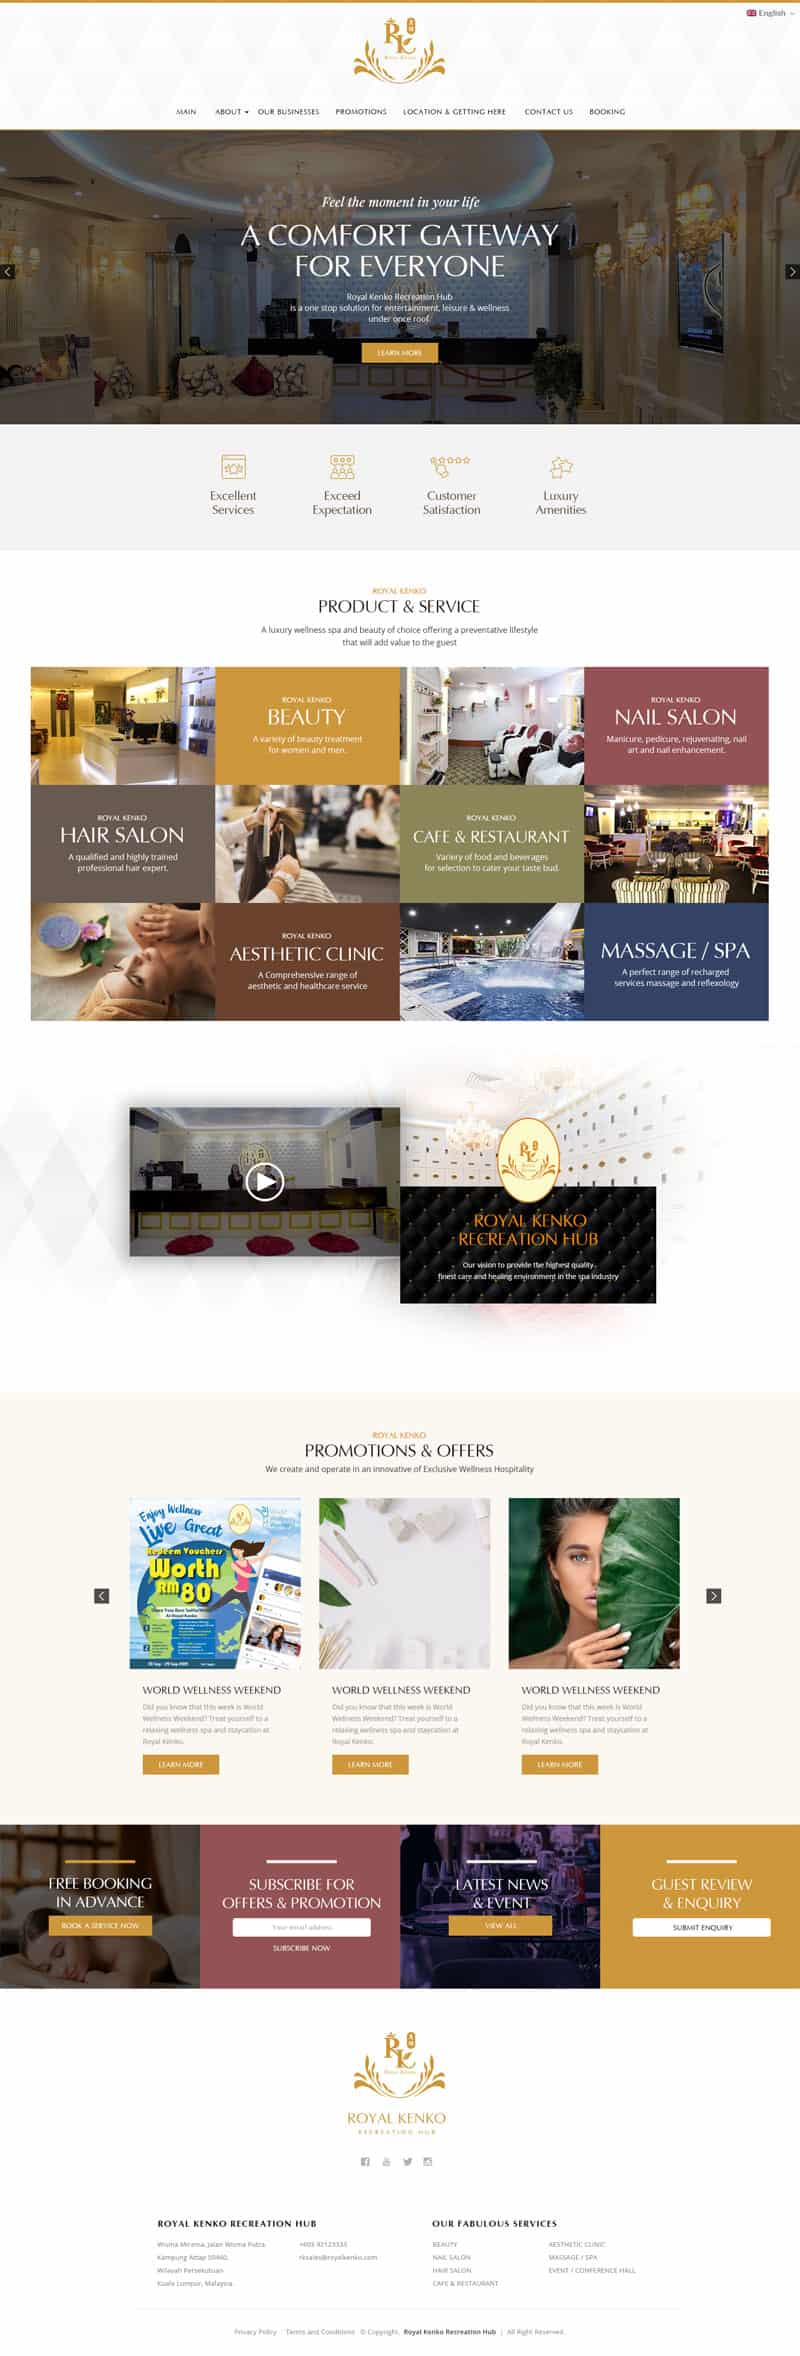 Royal Kenko Recreation Hub Web Design